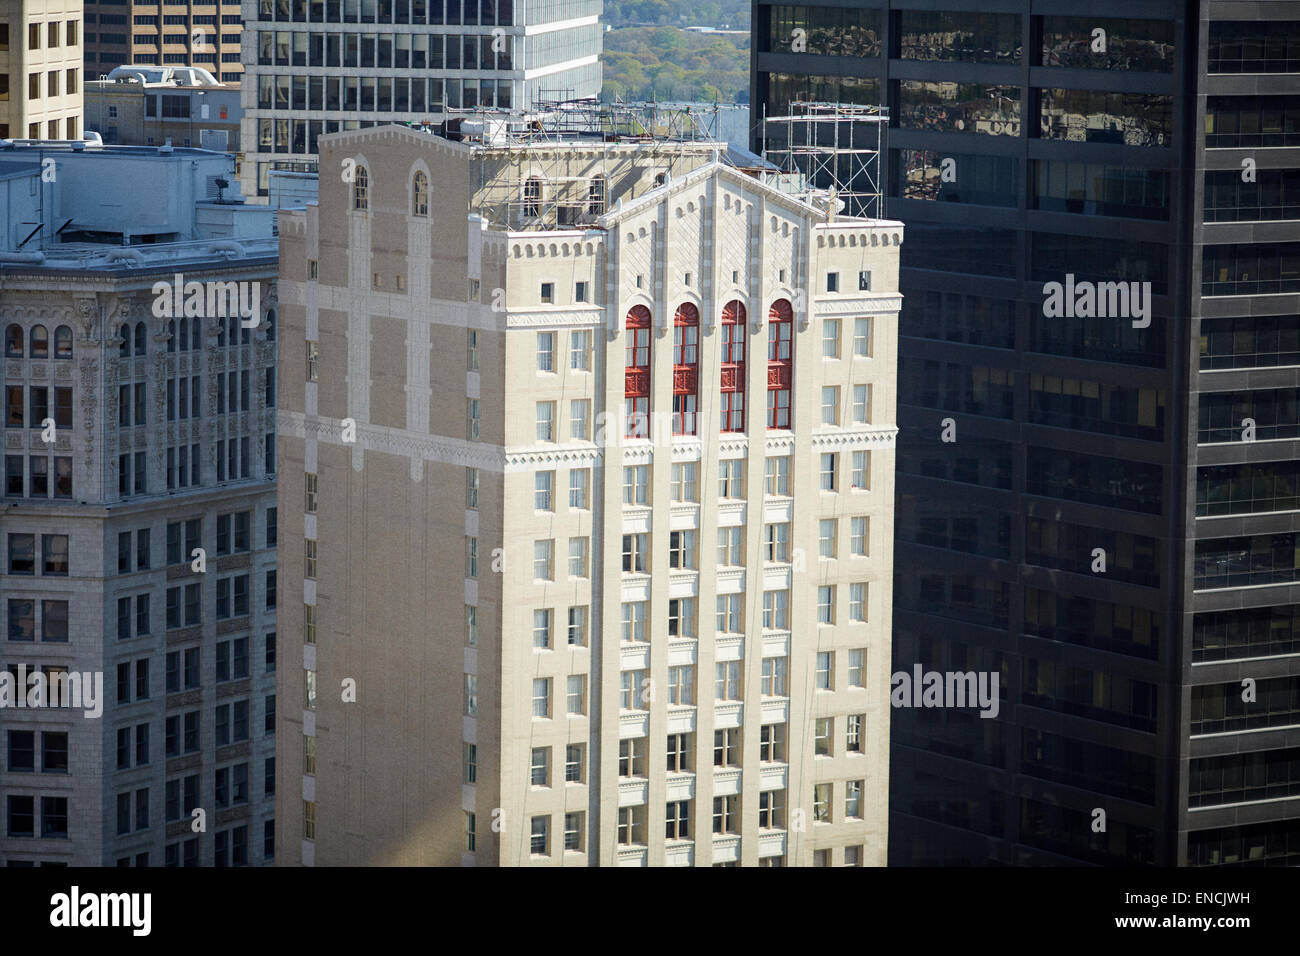 Downtown Atlanta in Georgia USA   Picture: The Residence Inn Atlanta Downtown is a 21-story hotel tower Stock Photo